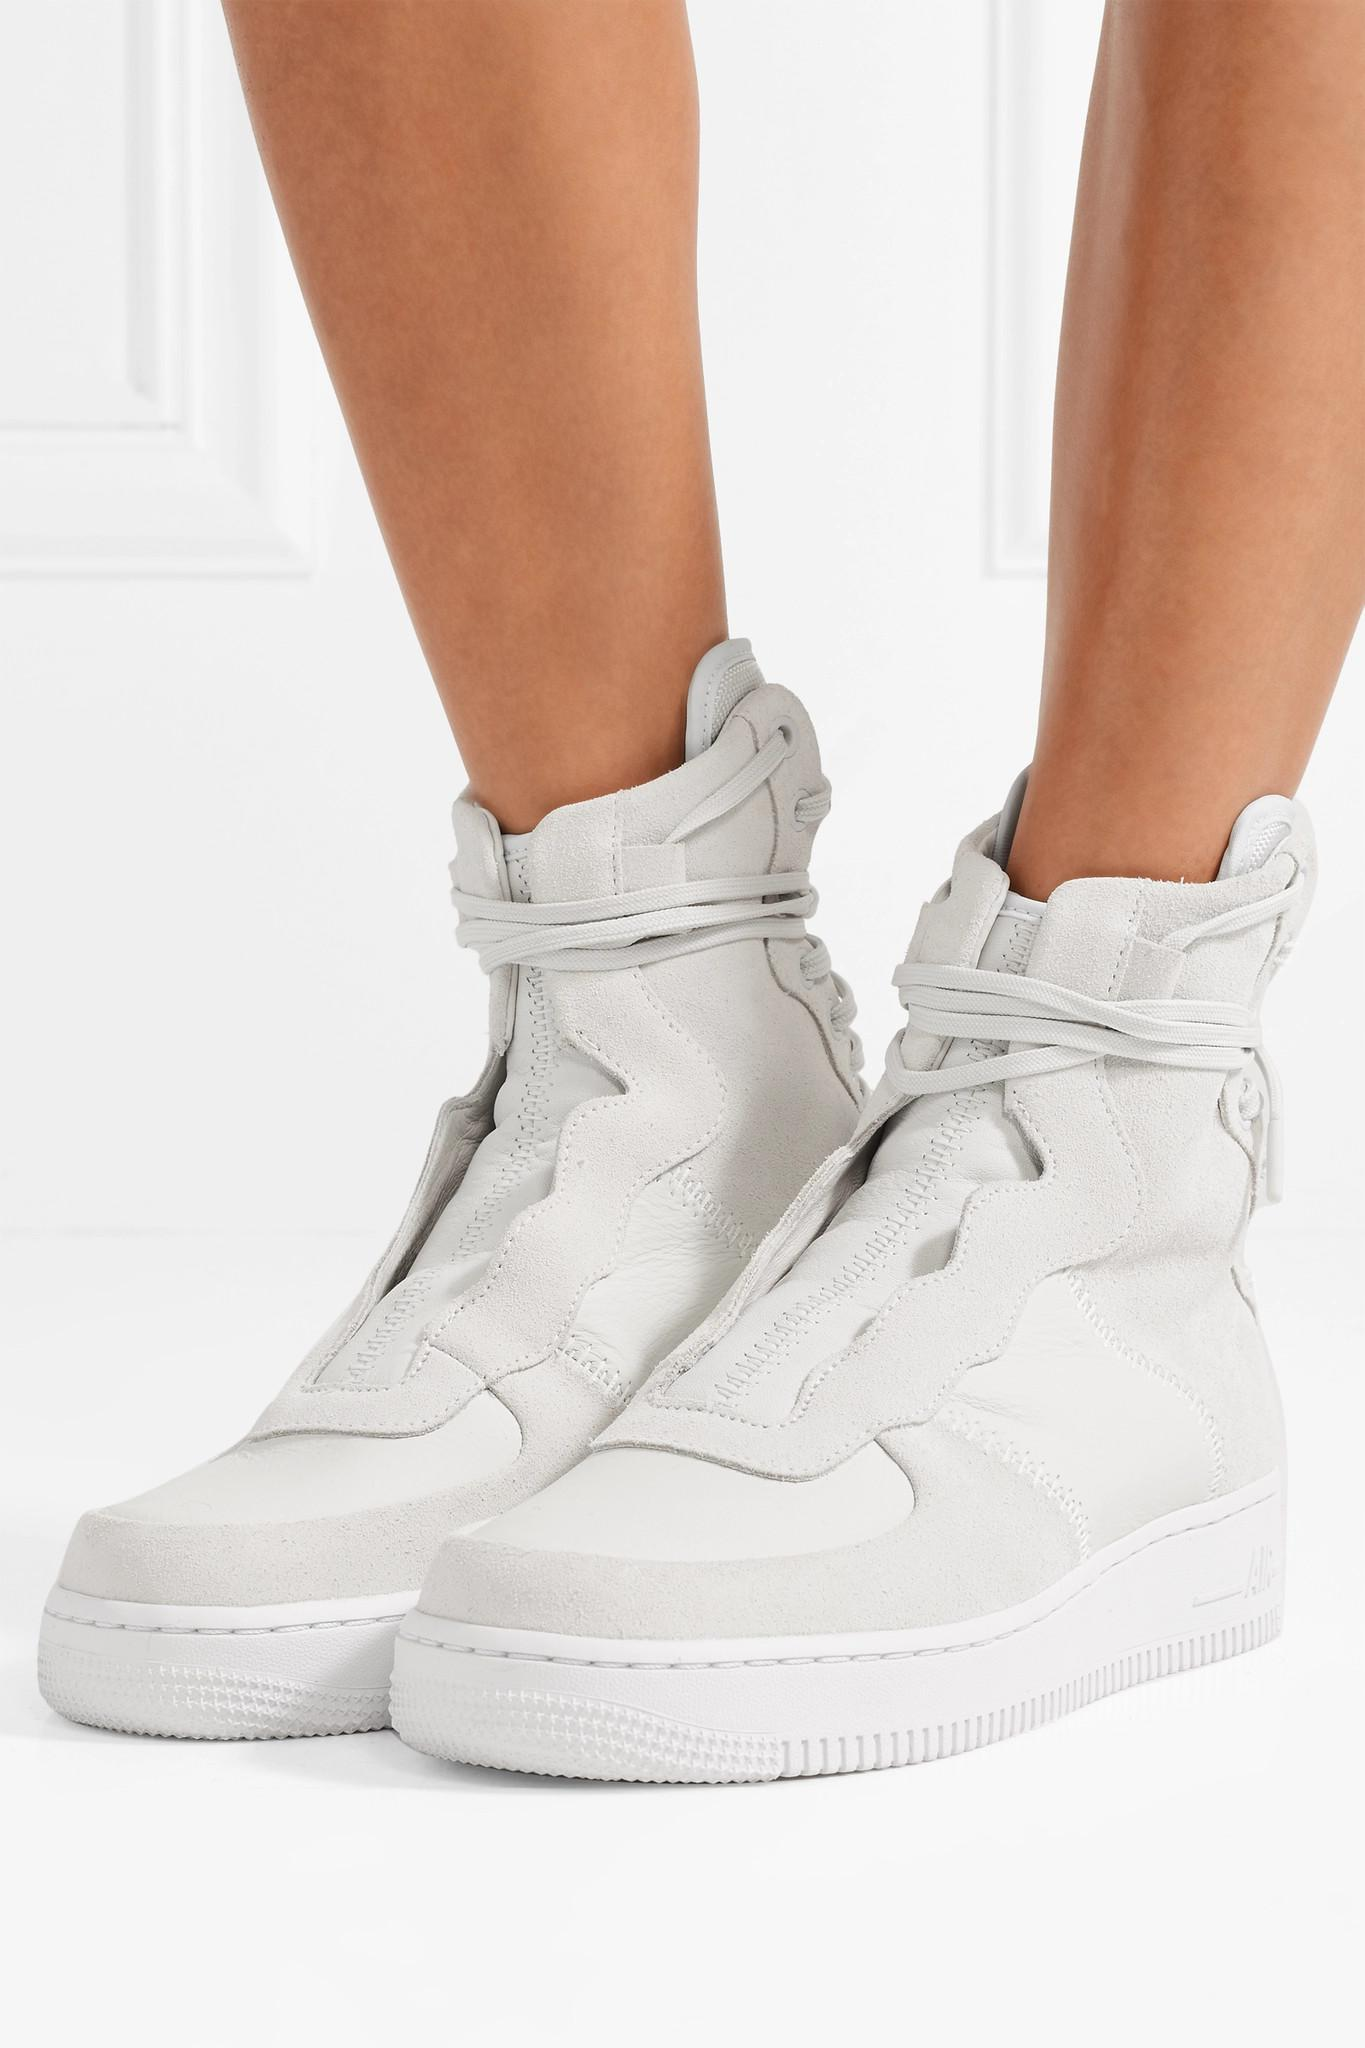 ee9711db099d Nike The 1 s Reimagined Air Force 1 Rebel Xx Suede And Leather High ...